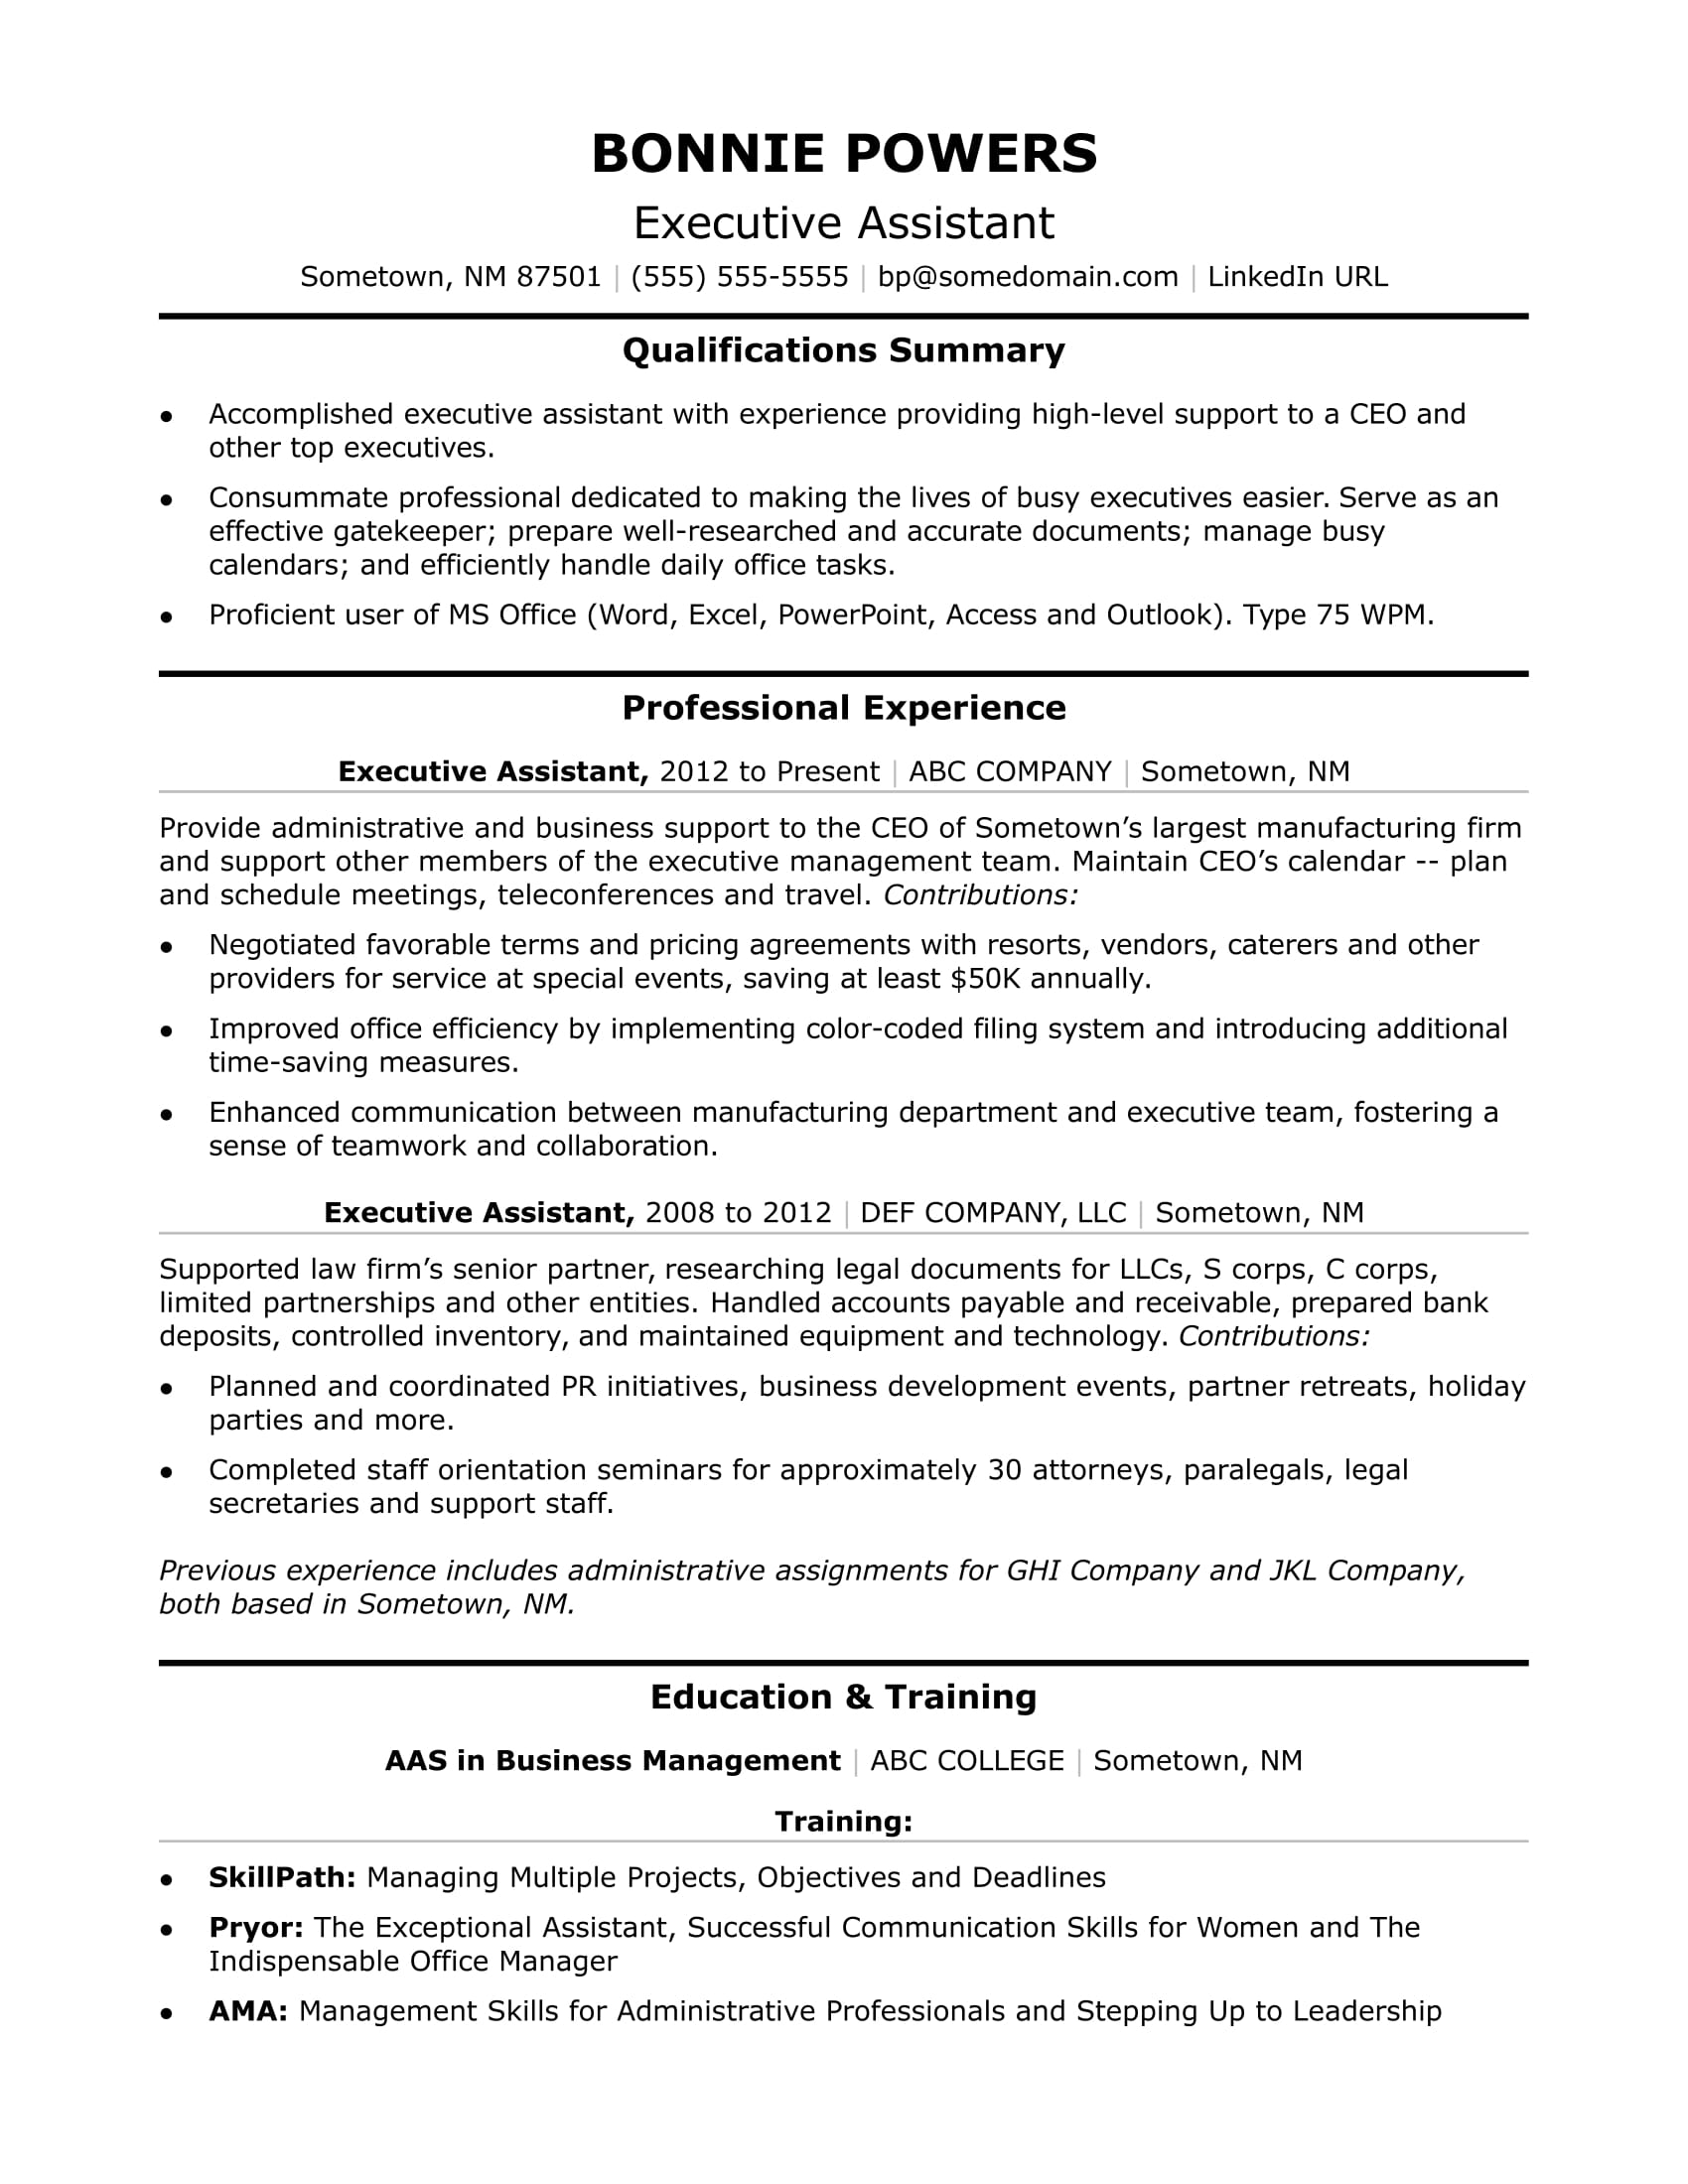 sample resume for executive